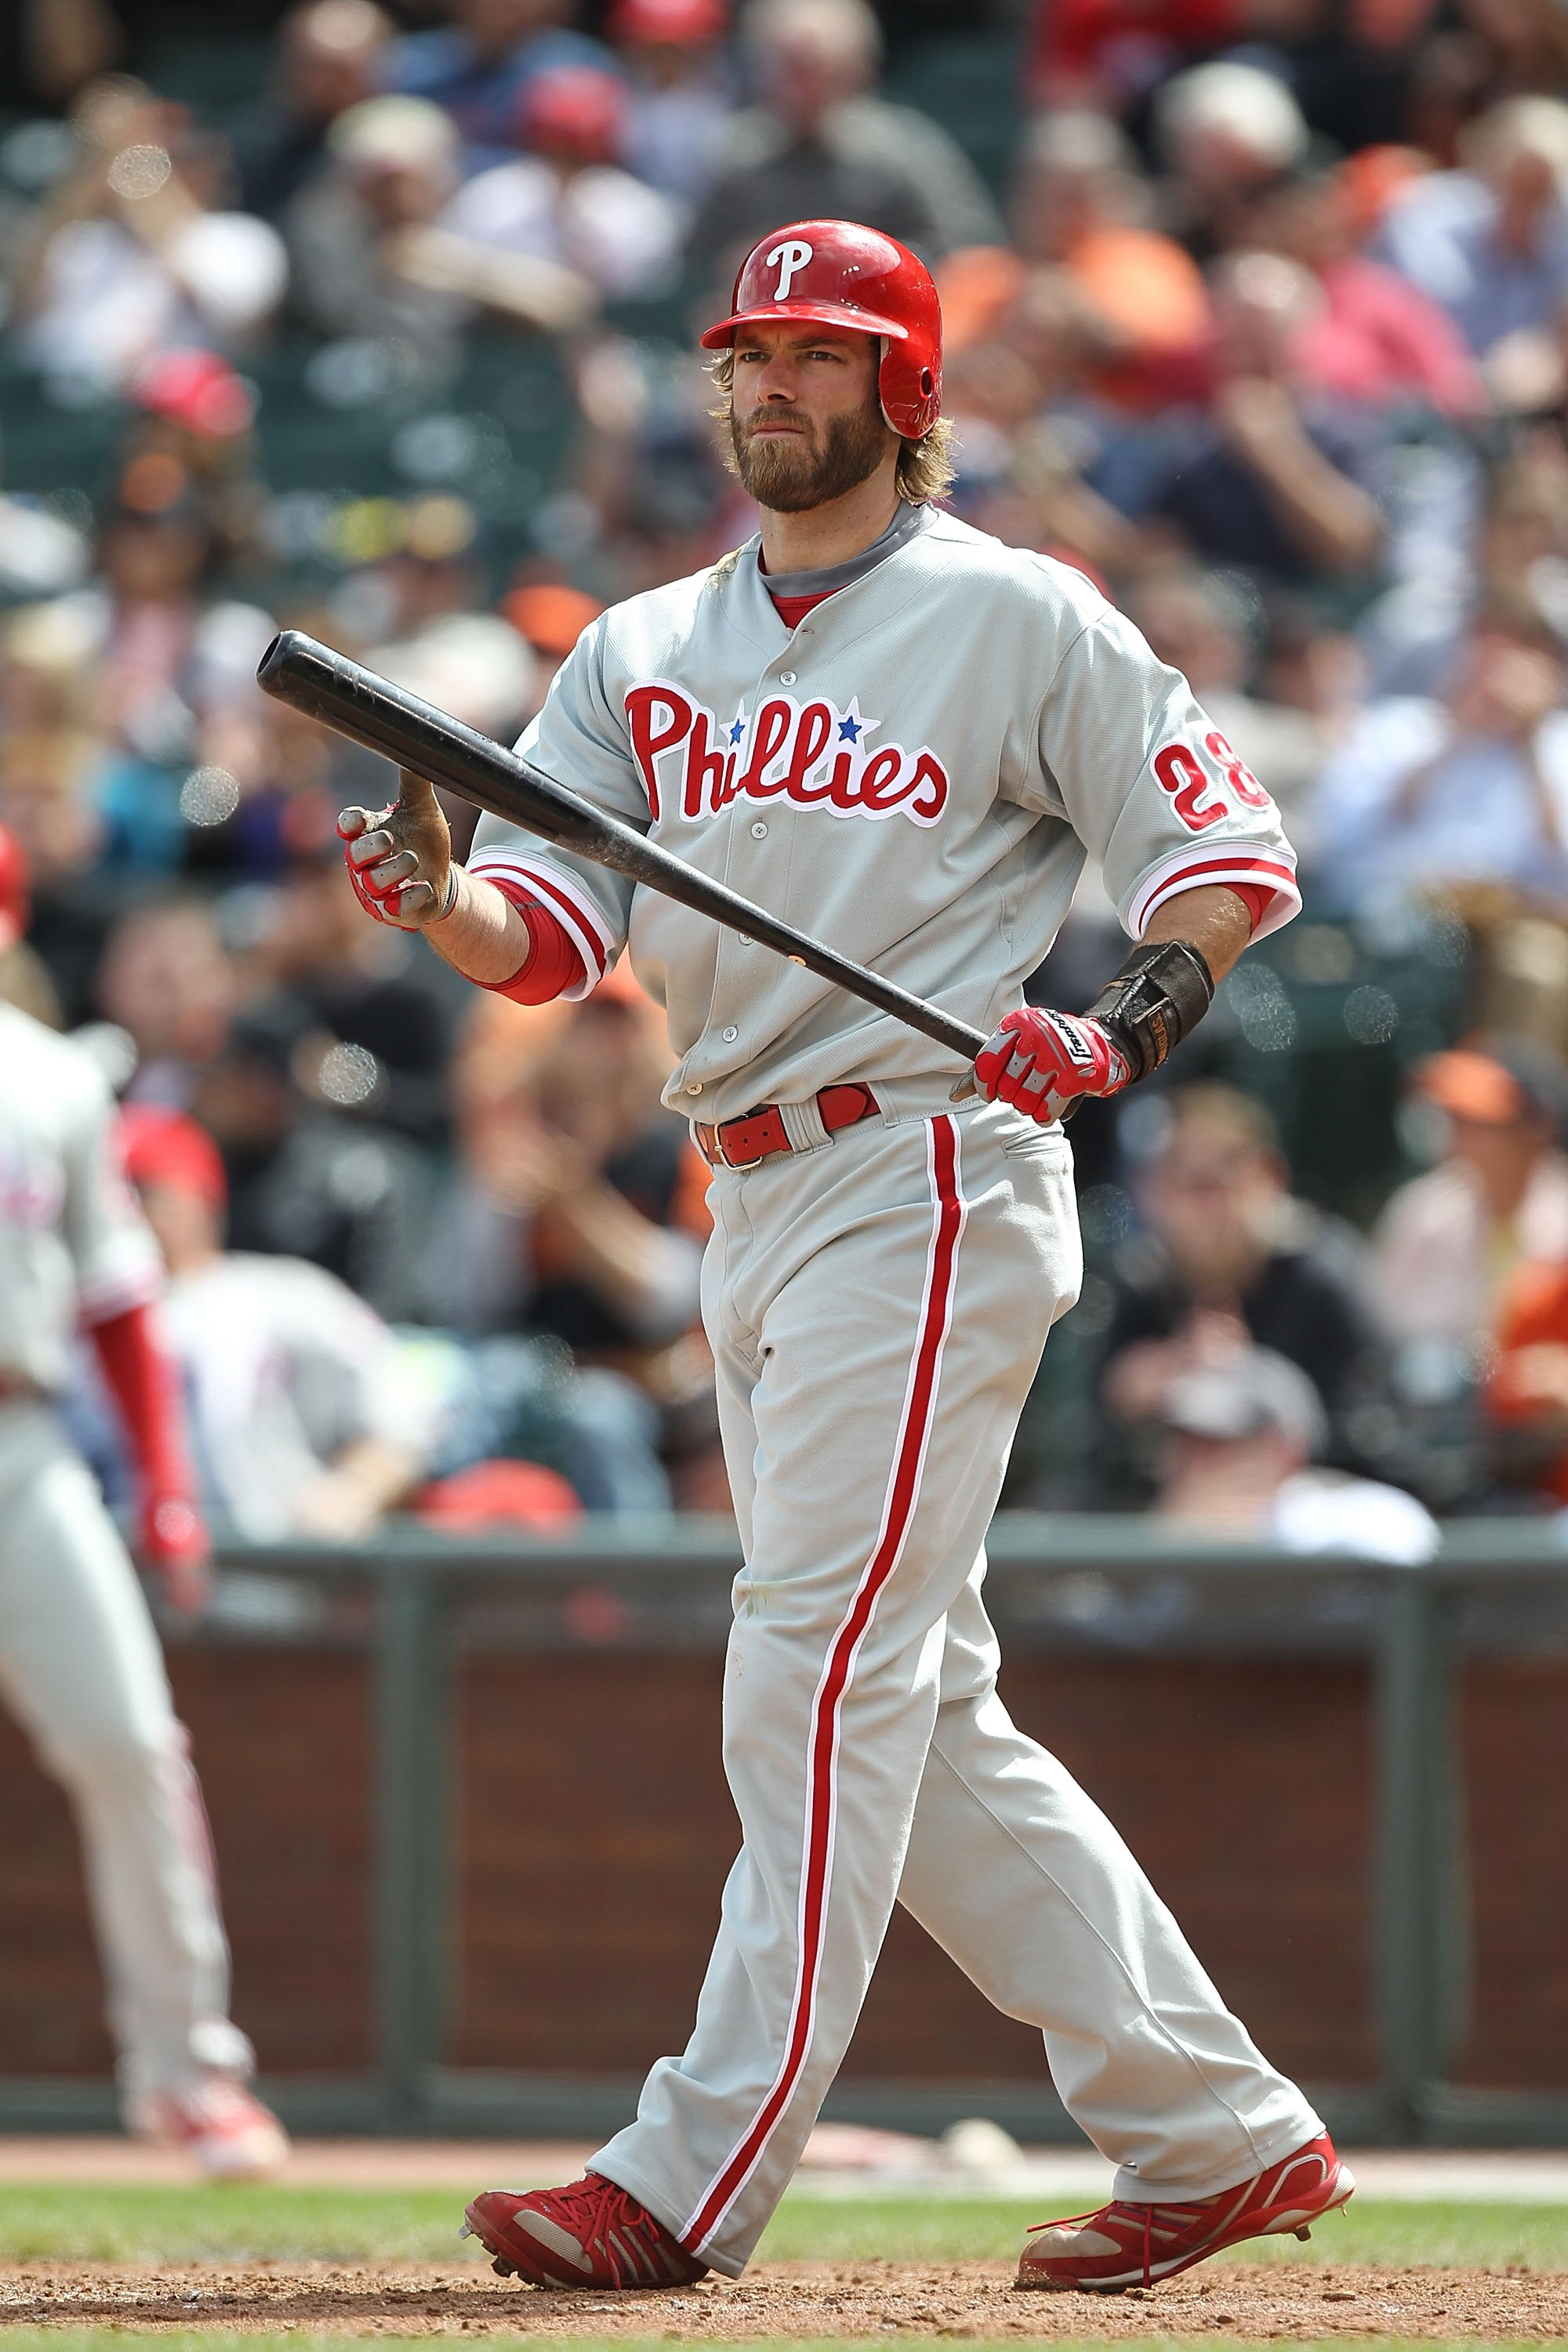 SAN FRANCISCO - APRIL 28:  Jayson Werth #28 of the Philadelphia Phillies bats against the San Francisco Giants during an MLB game at AT&T Park on April 28, 2010 in San Francisco, California.  (Photo by Jed Jacobsohn/Getty Images)